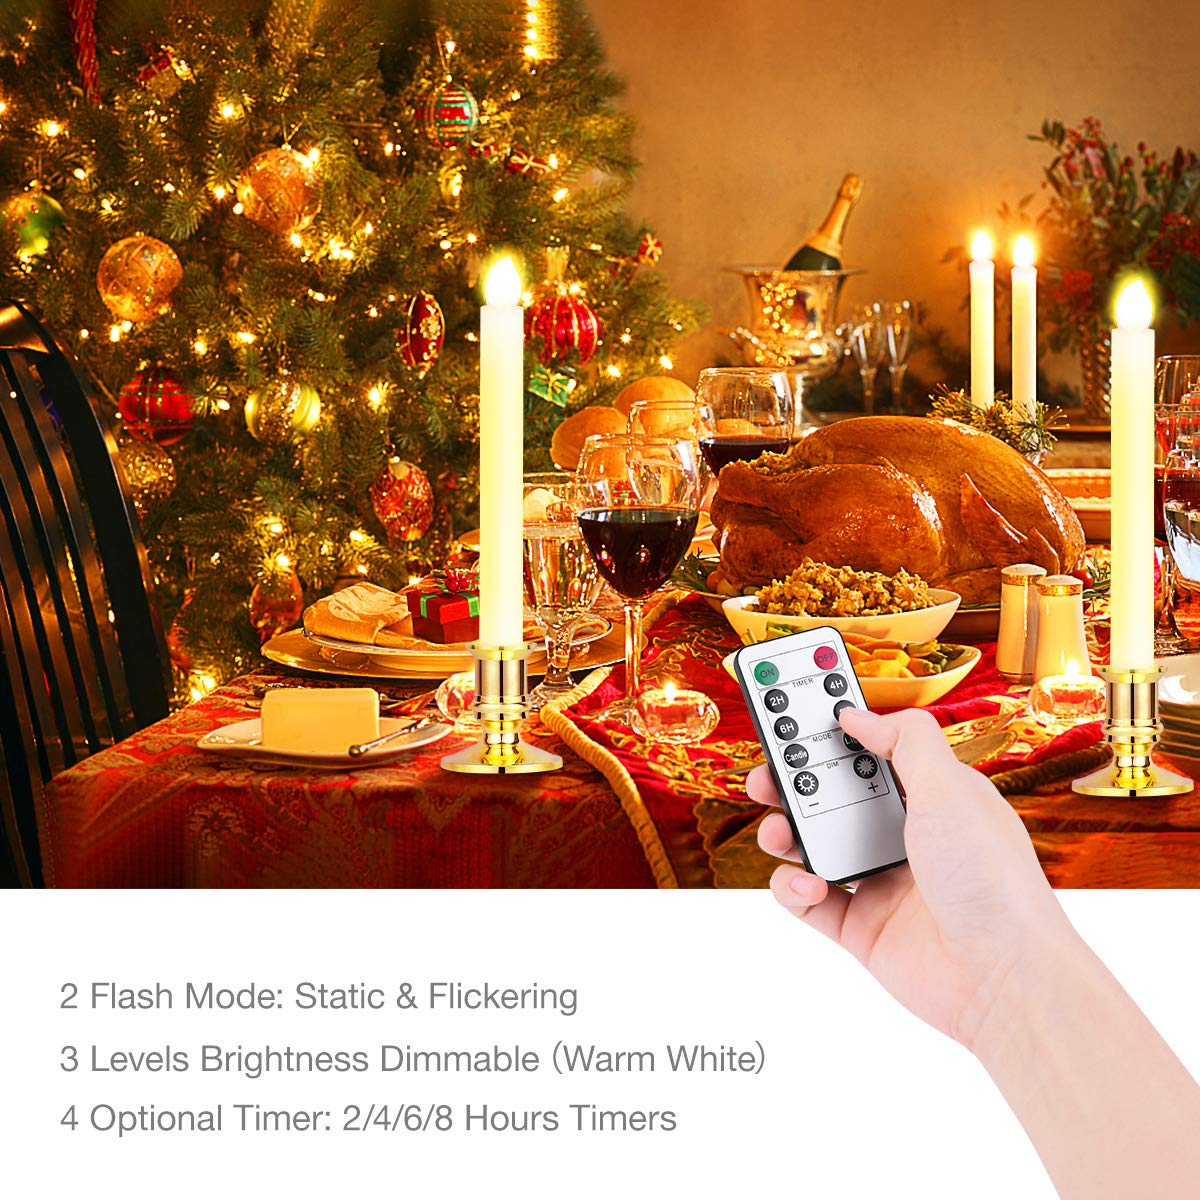 Window Candles Lights, YUNLIGHTS 12 Pack Battery Powered Window Candles Flameless Taper Candles with Remote Control, Timer, Removable Gold Holders, Suction Cups, Warm White Hanukkah Candles by YUNLIGHTS (Image #2)